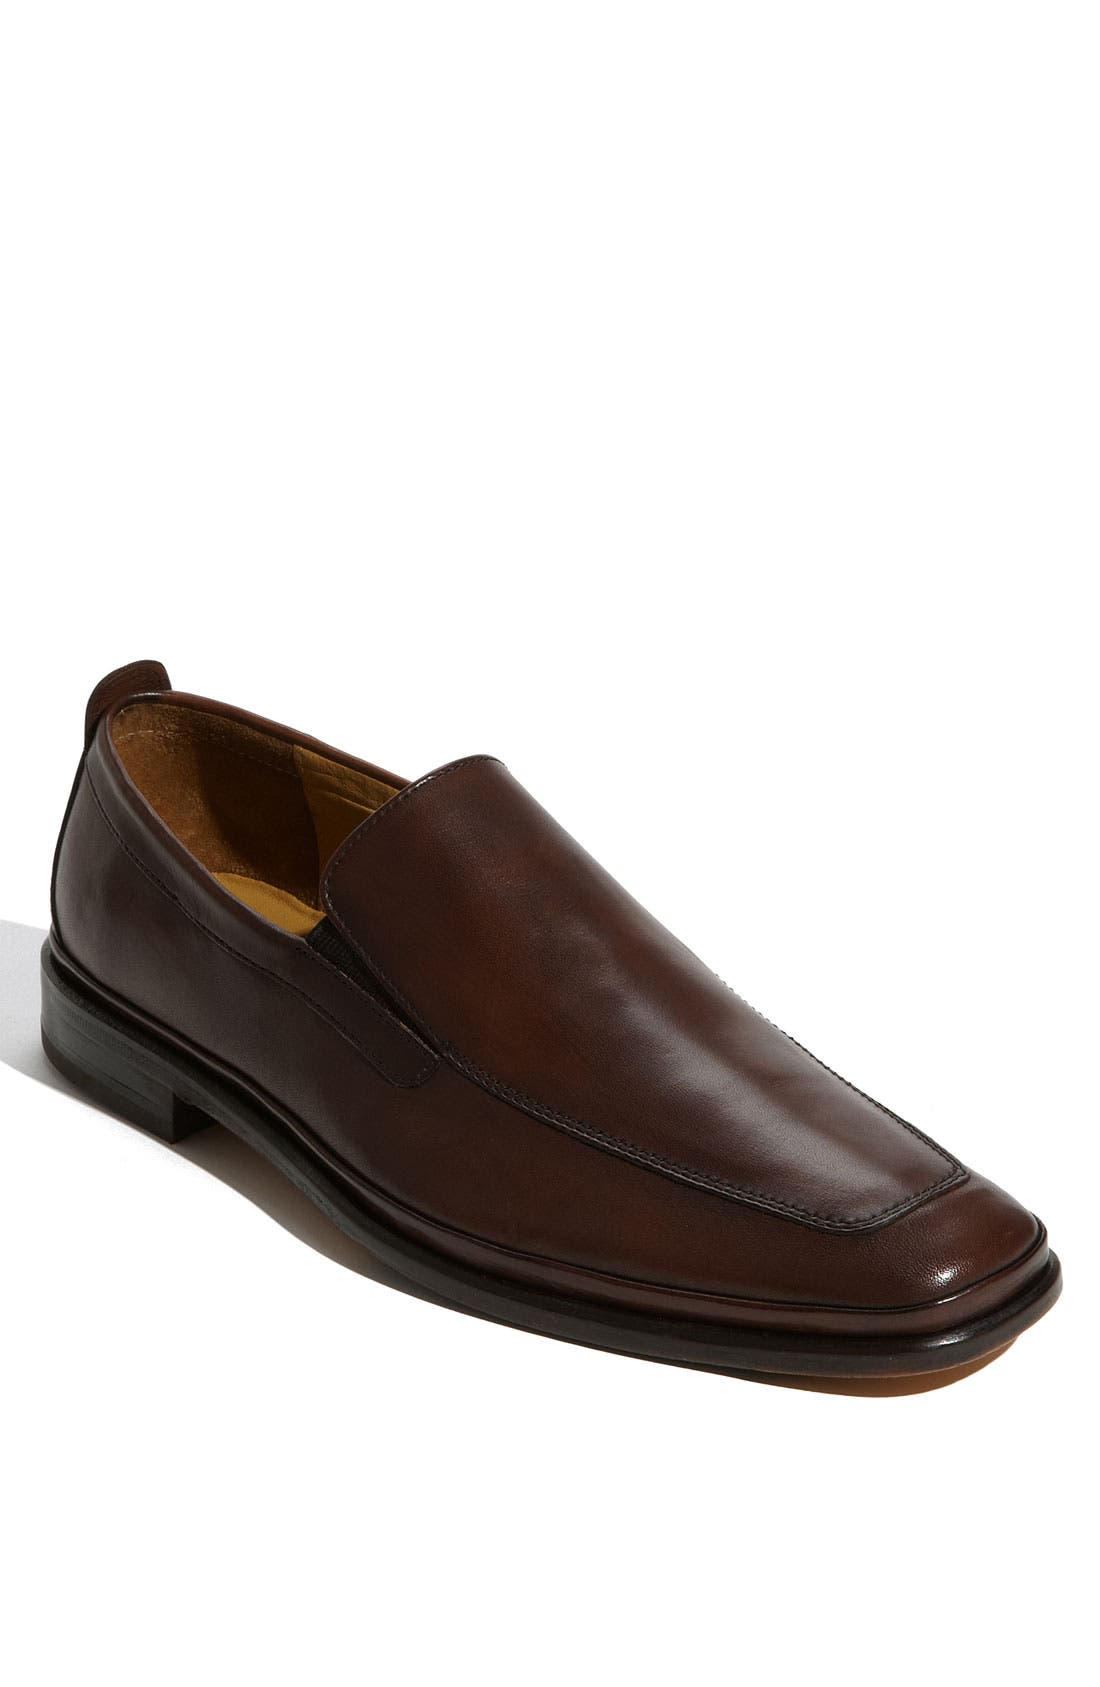 Main Image - Cole Haan 'Bradenton' Venetian Slip-On